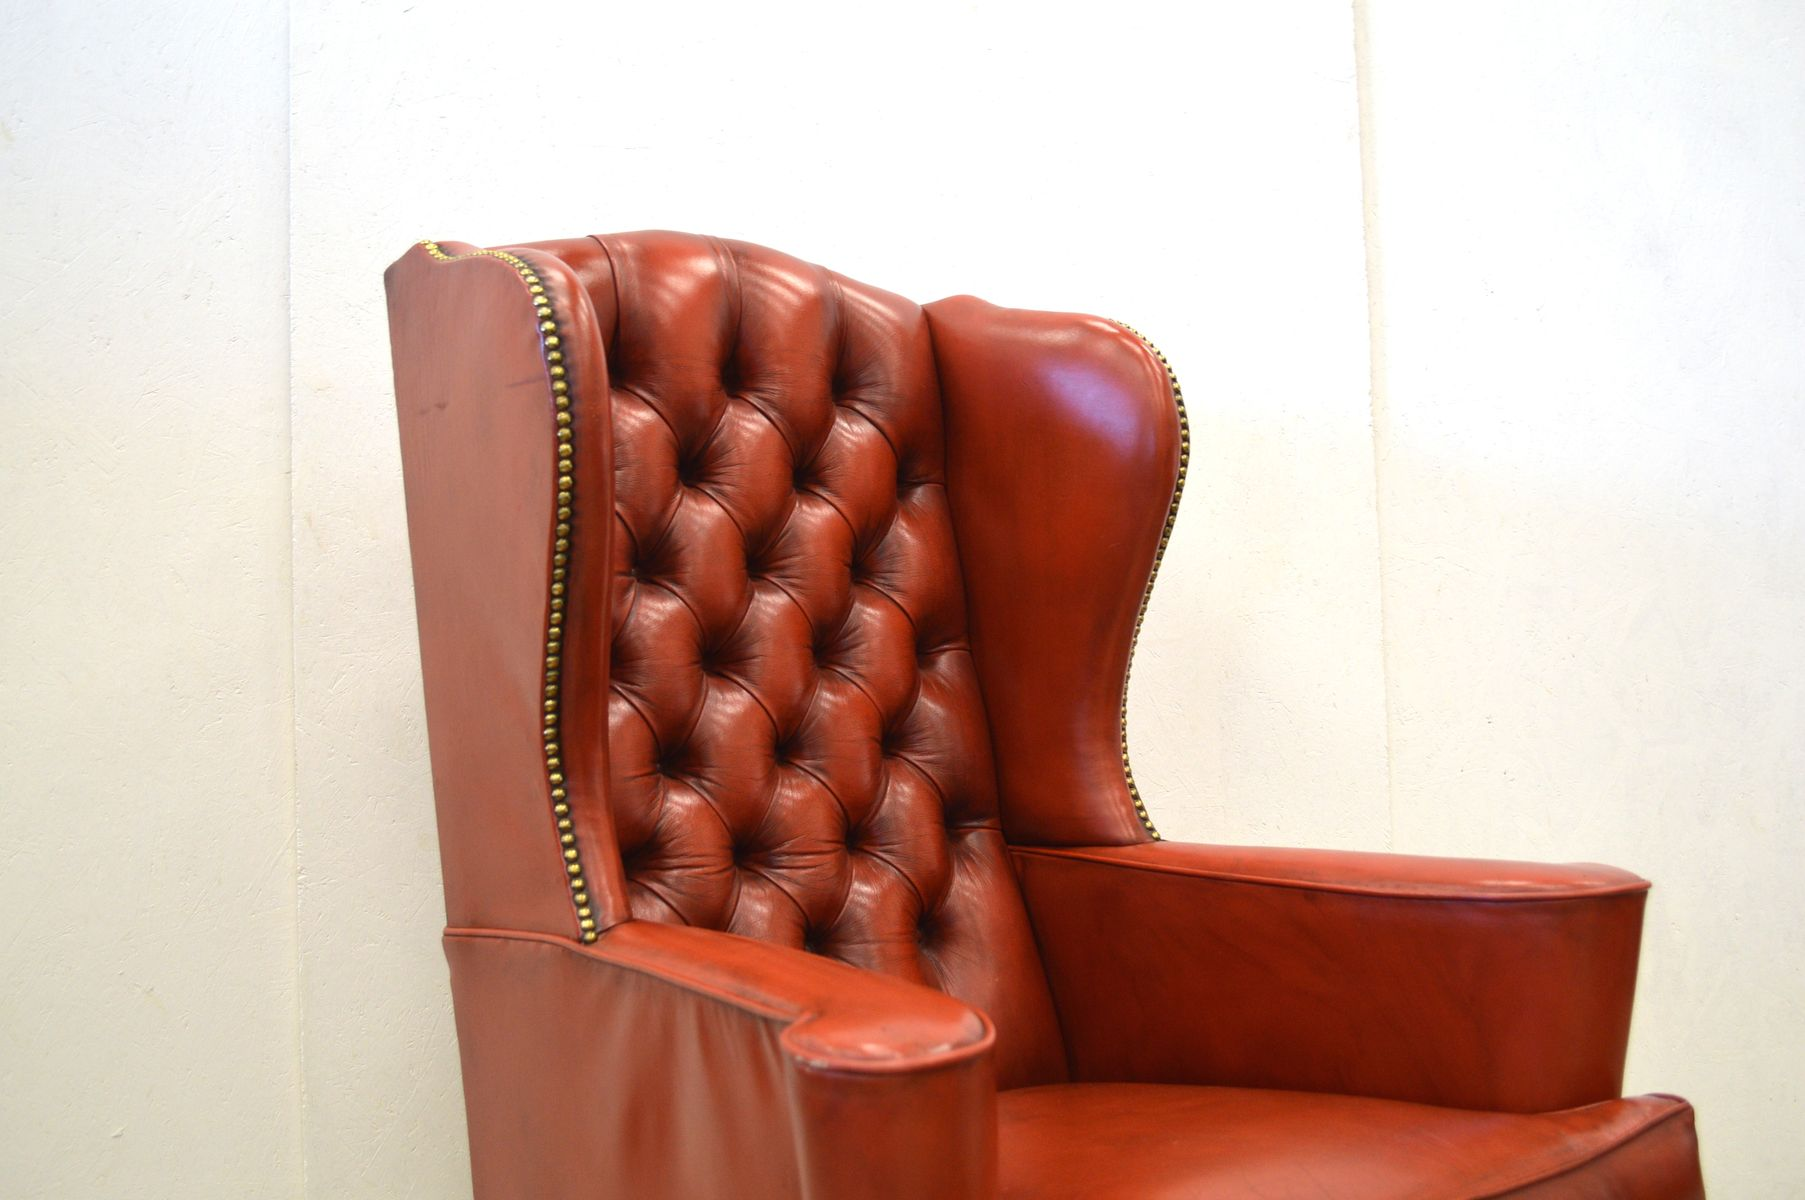 Tufted leather wingback